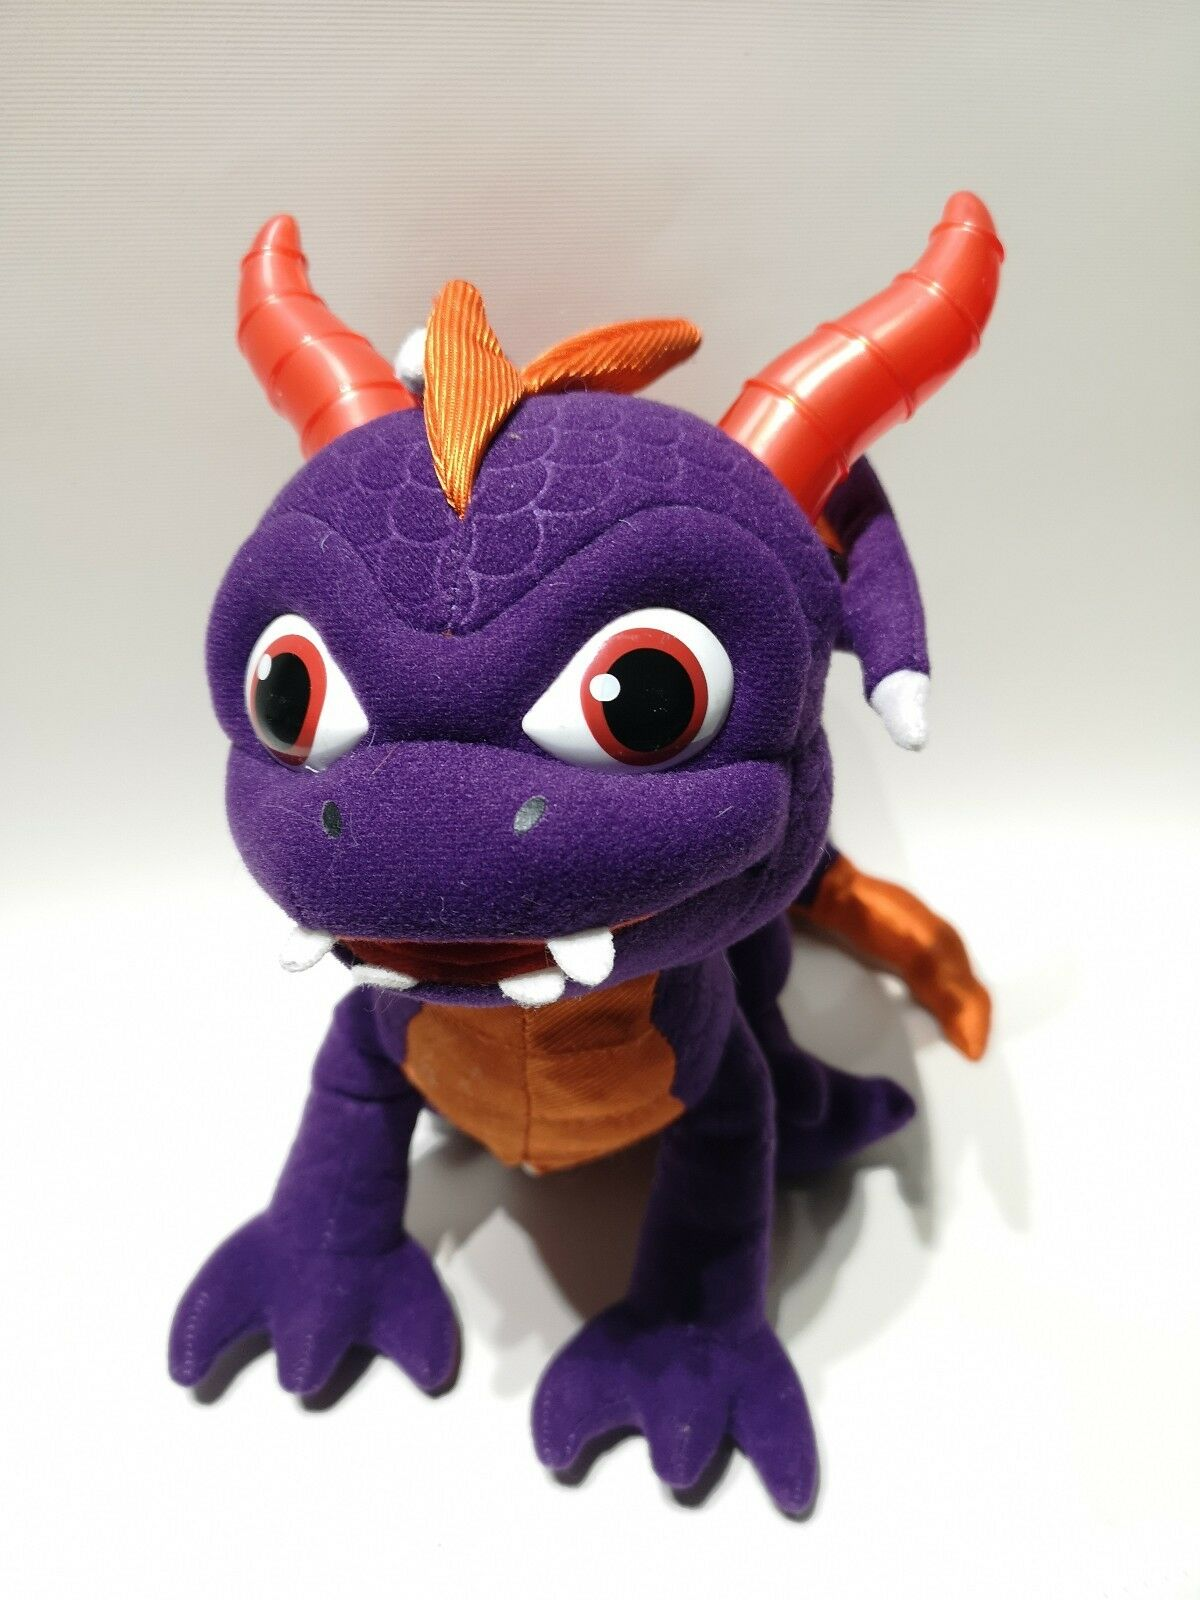 Skylanders Giants Portal Action Spyro The Dragon Light Up Talking Talking Talking Plush Toy  Y 6761a5